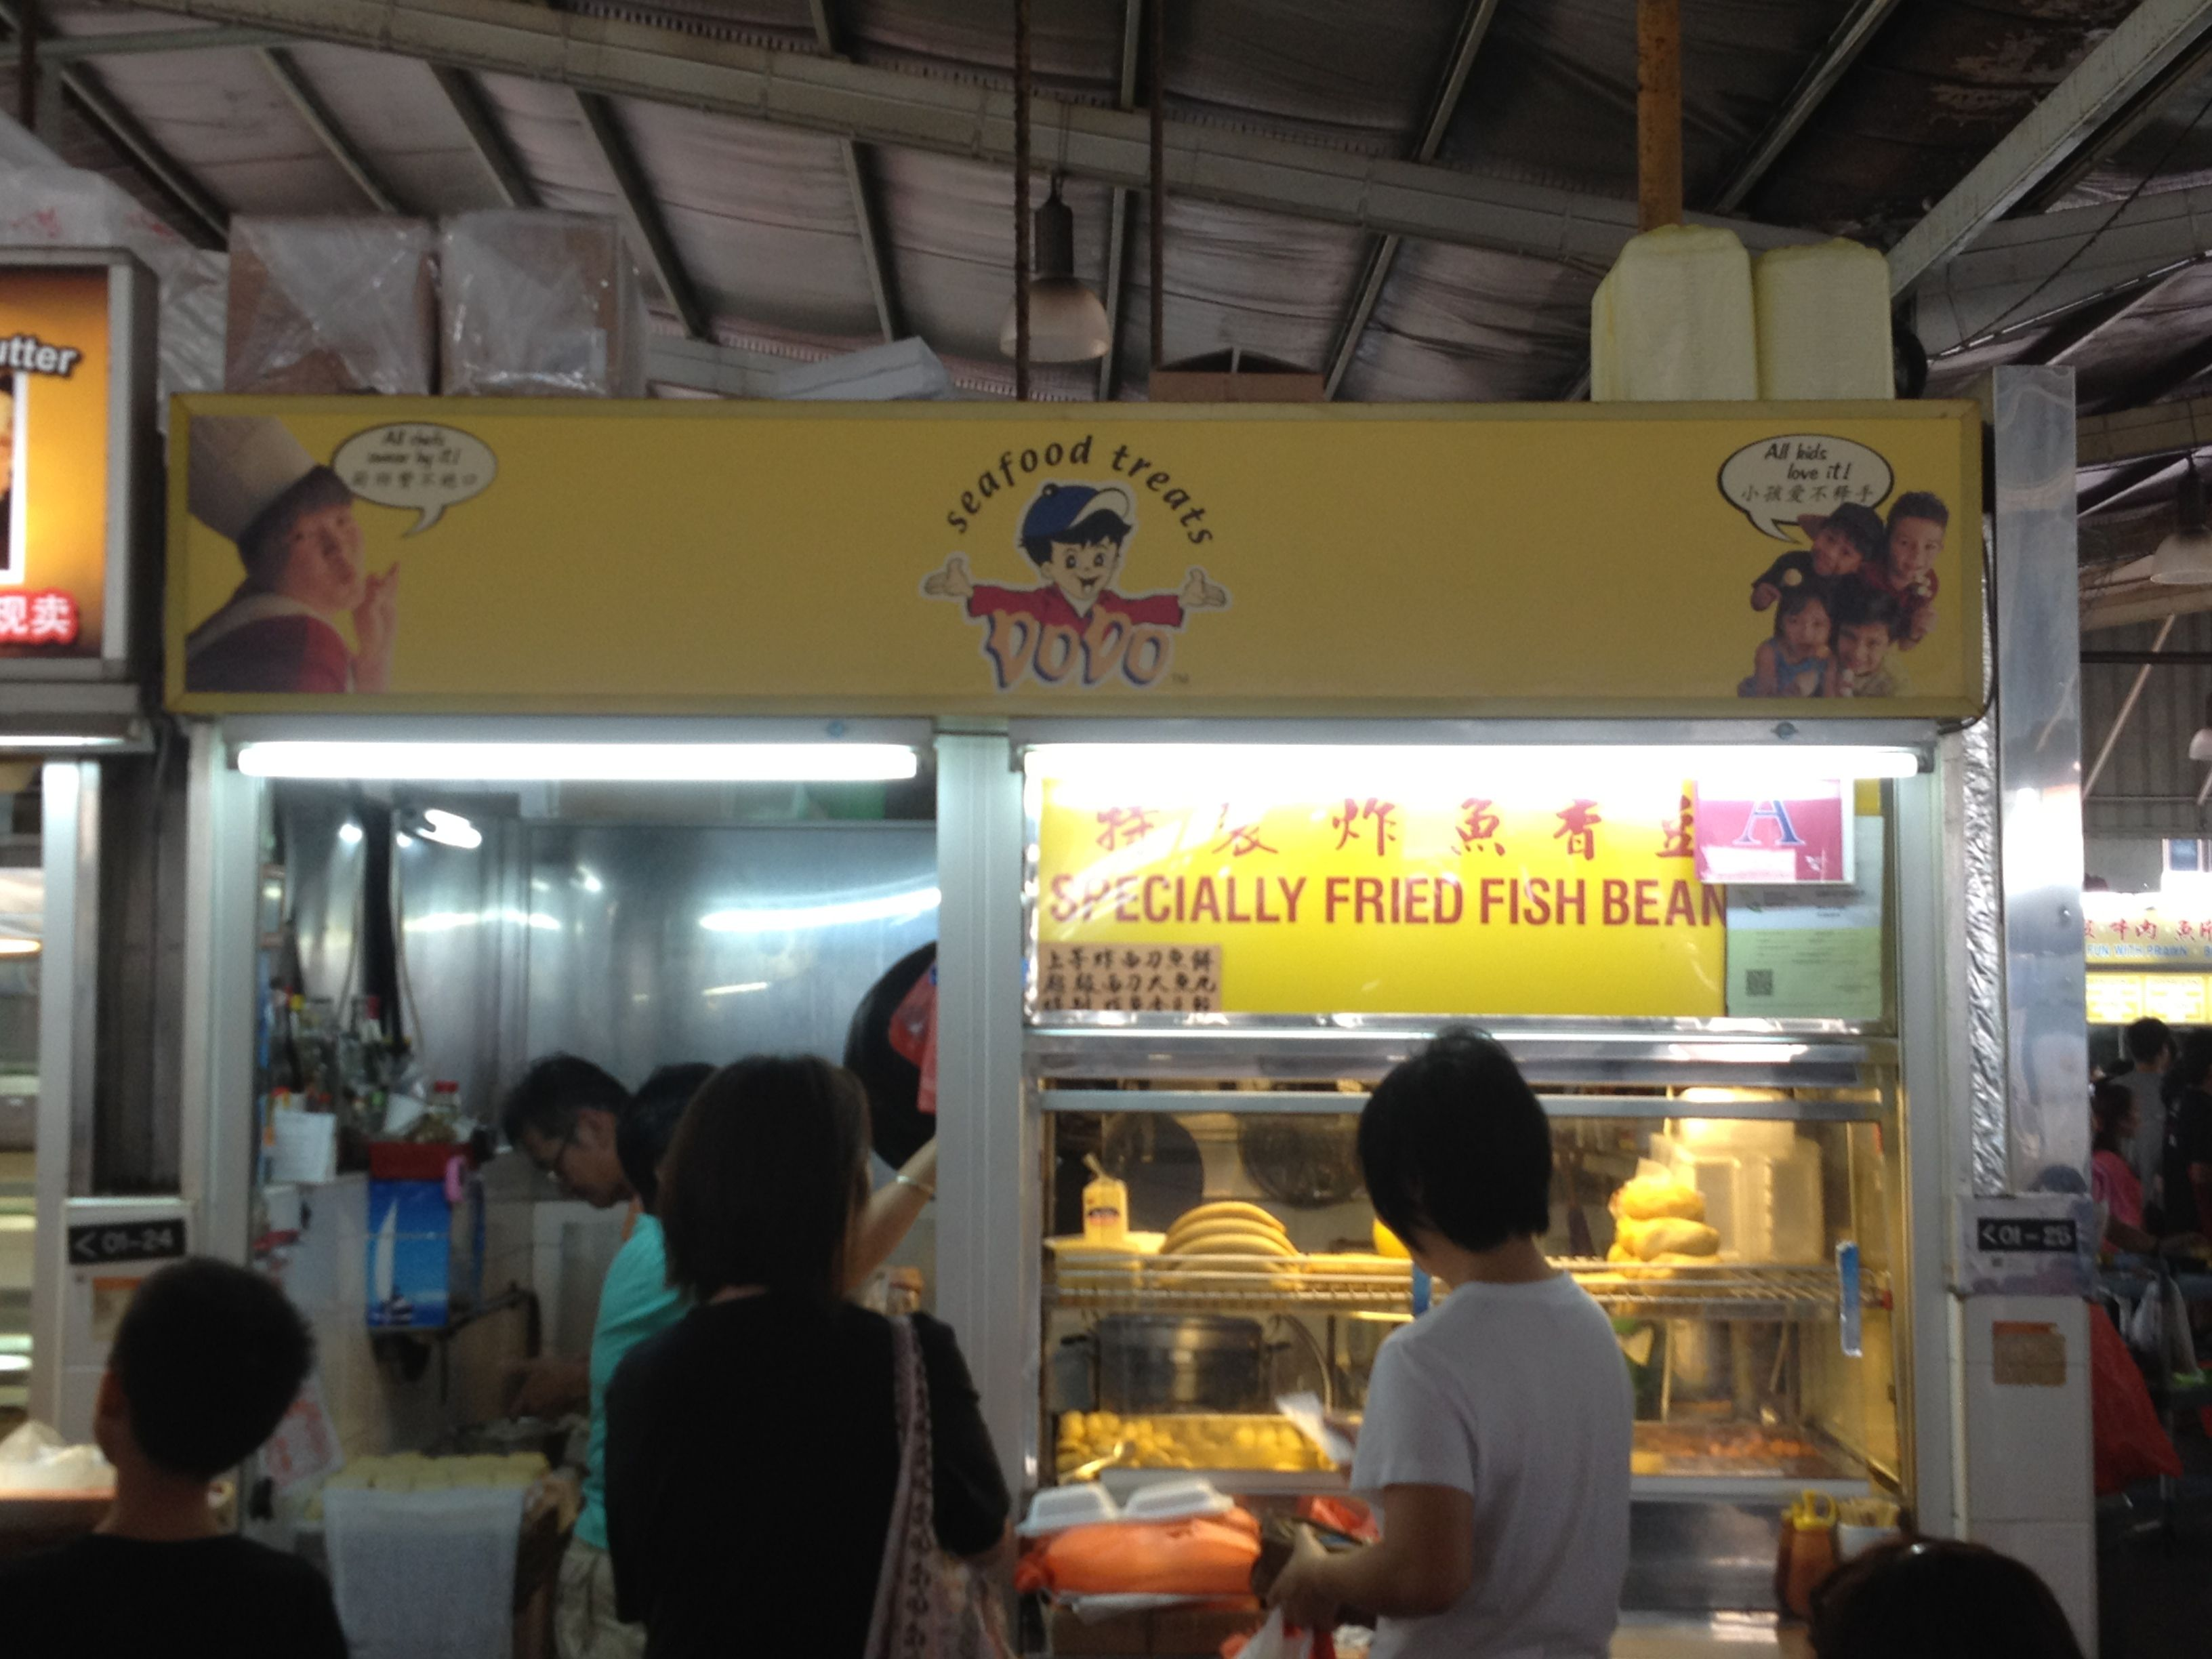 Dodo seafood treats fried fish seafood broadway shows